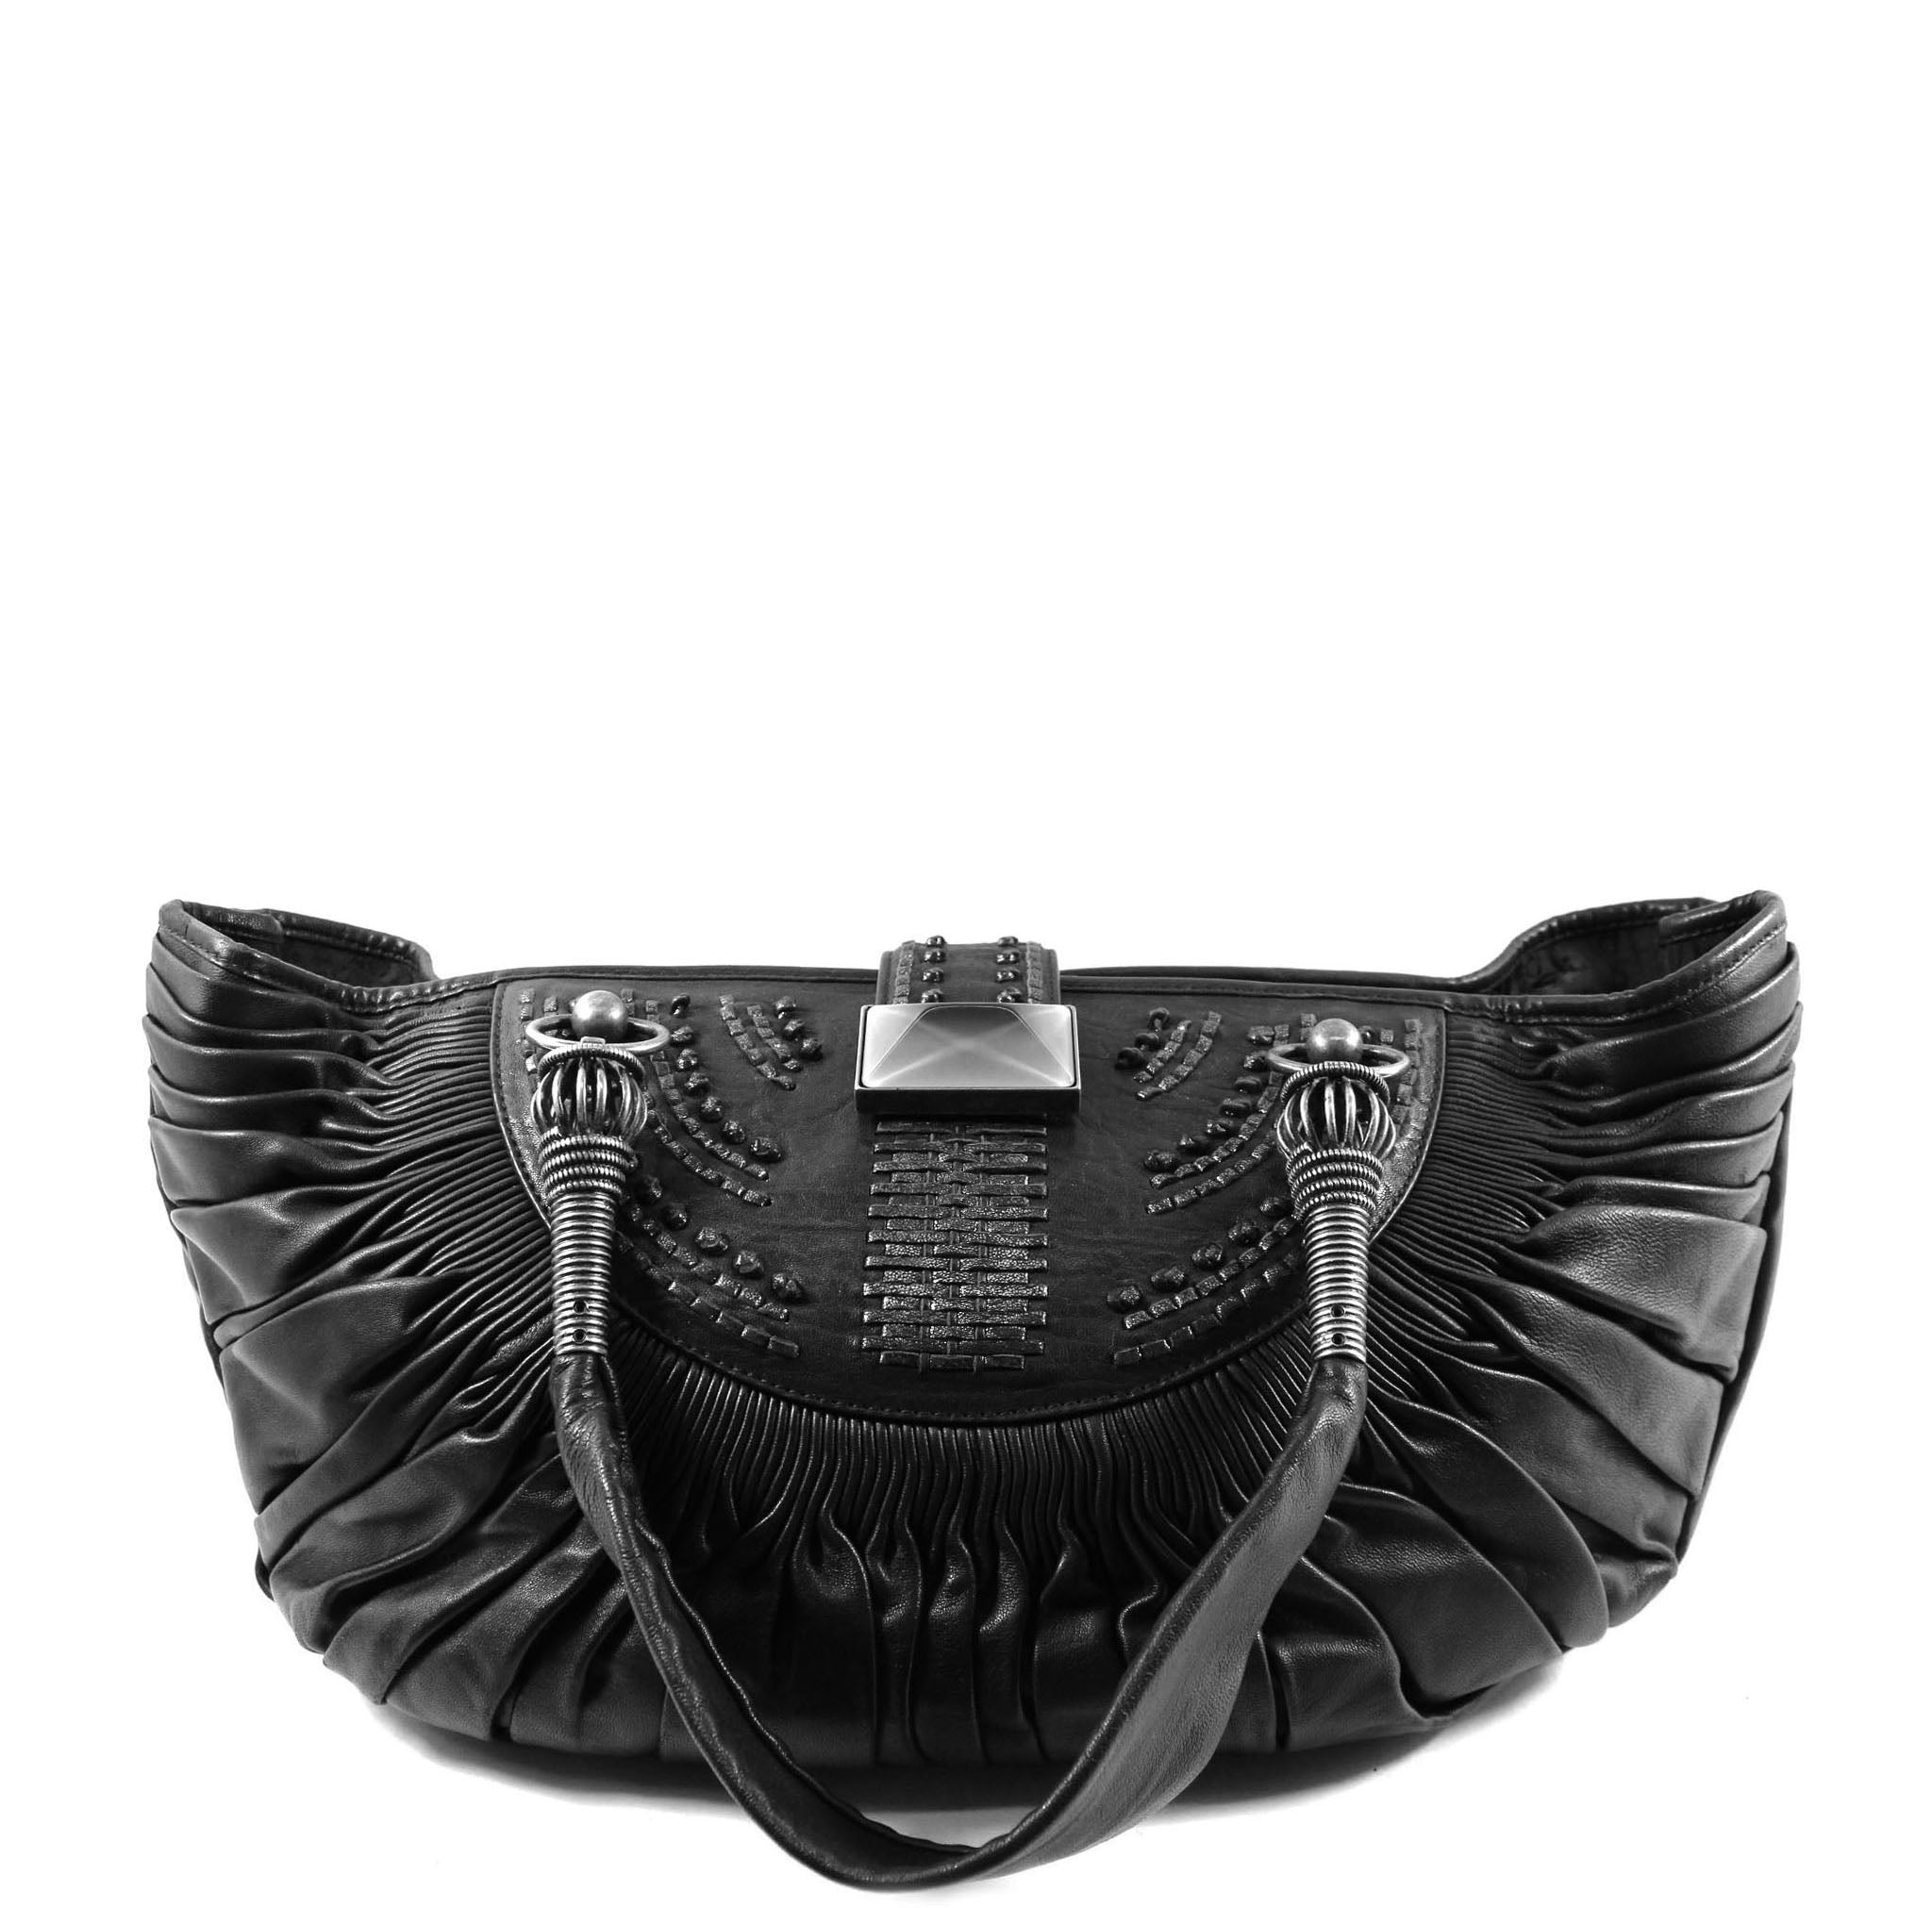 Christian Dior  Plisse  Black Leather Pleated Handbag – Encore Resale.com 5382e90dffe26